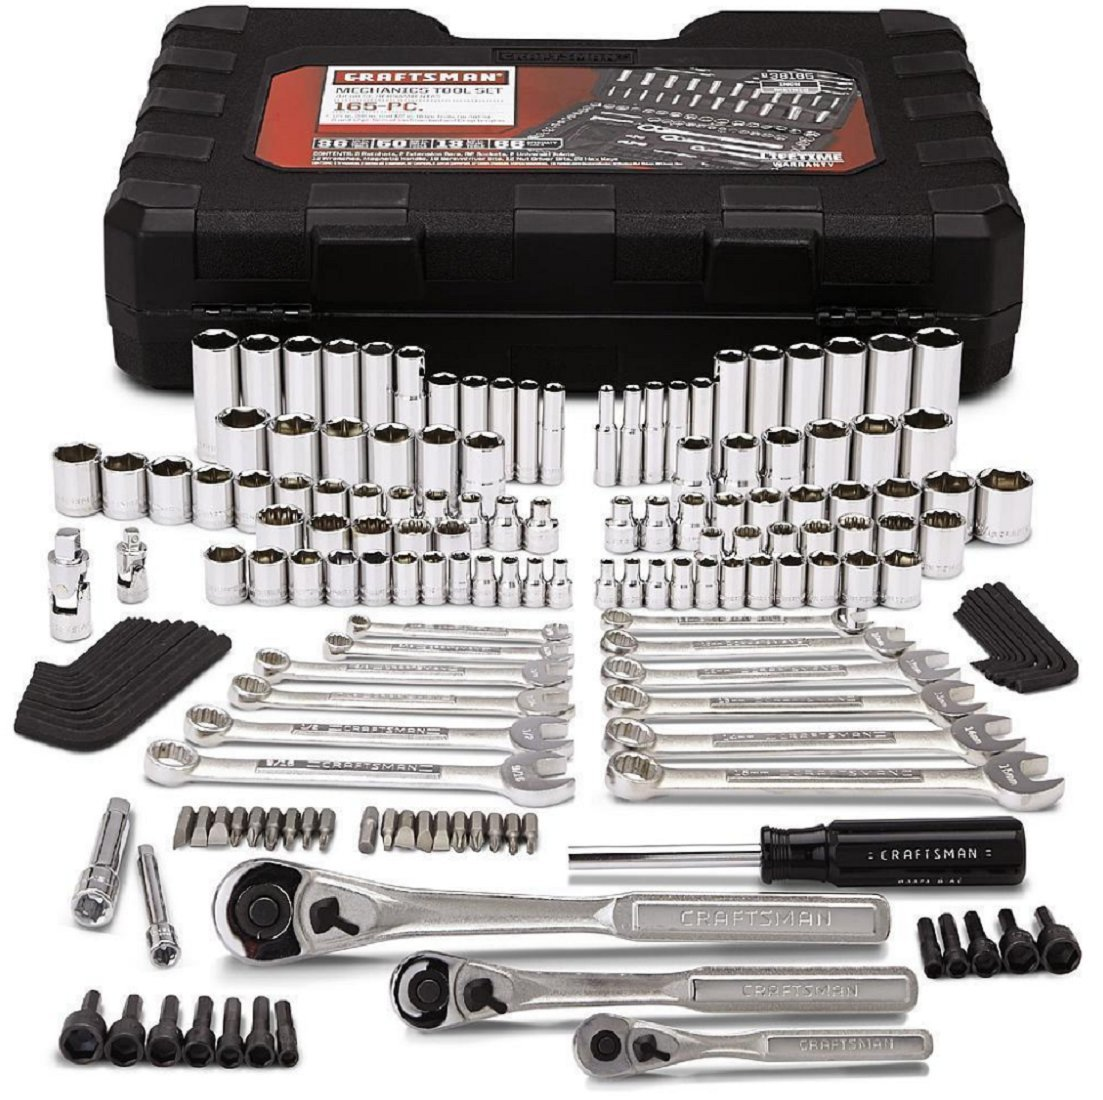 Craftsman Mechanics Tool Set Kit Wrenches Sockets Ratchet SAE Metric 165 Pc Case